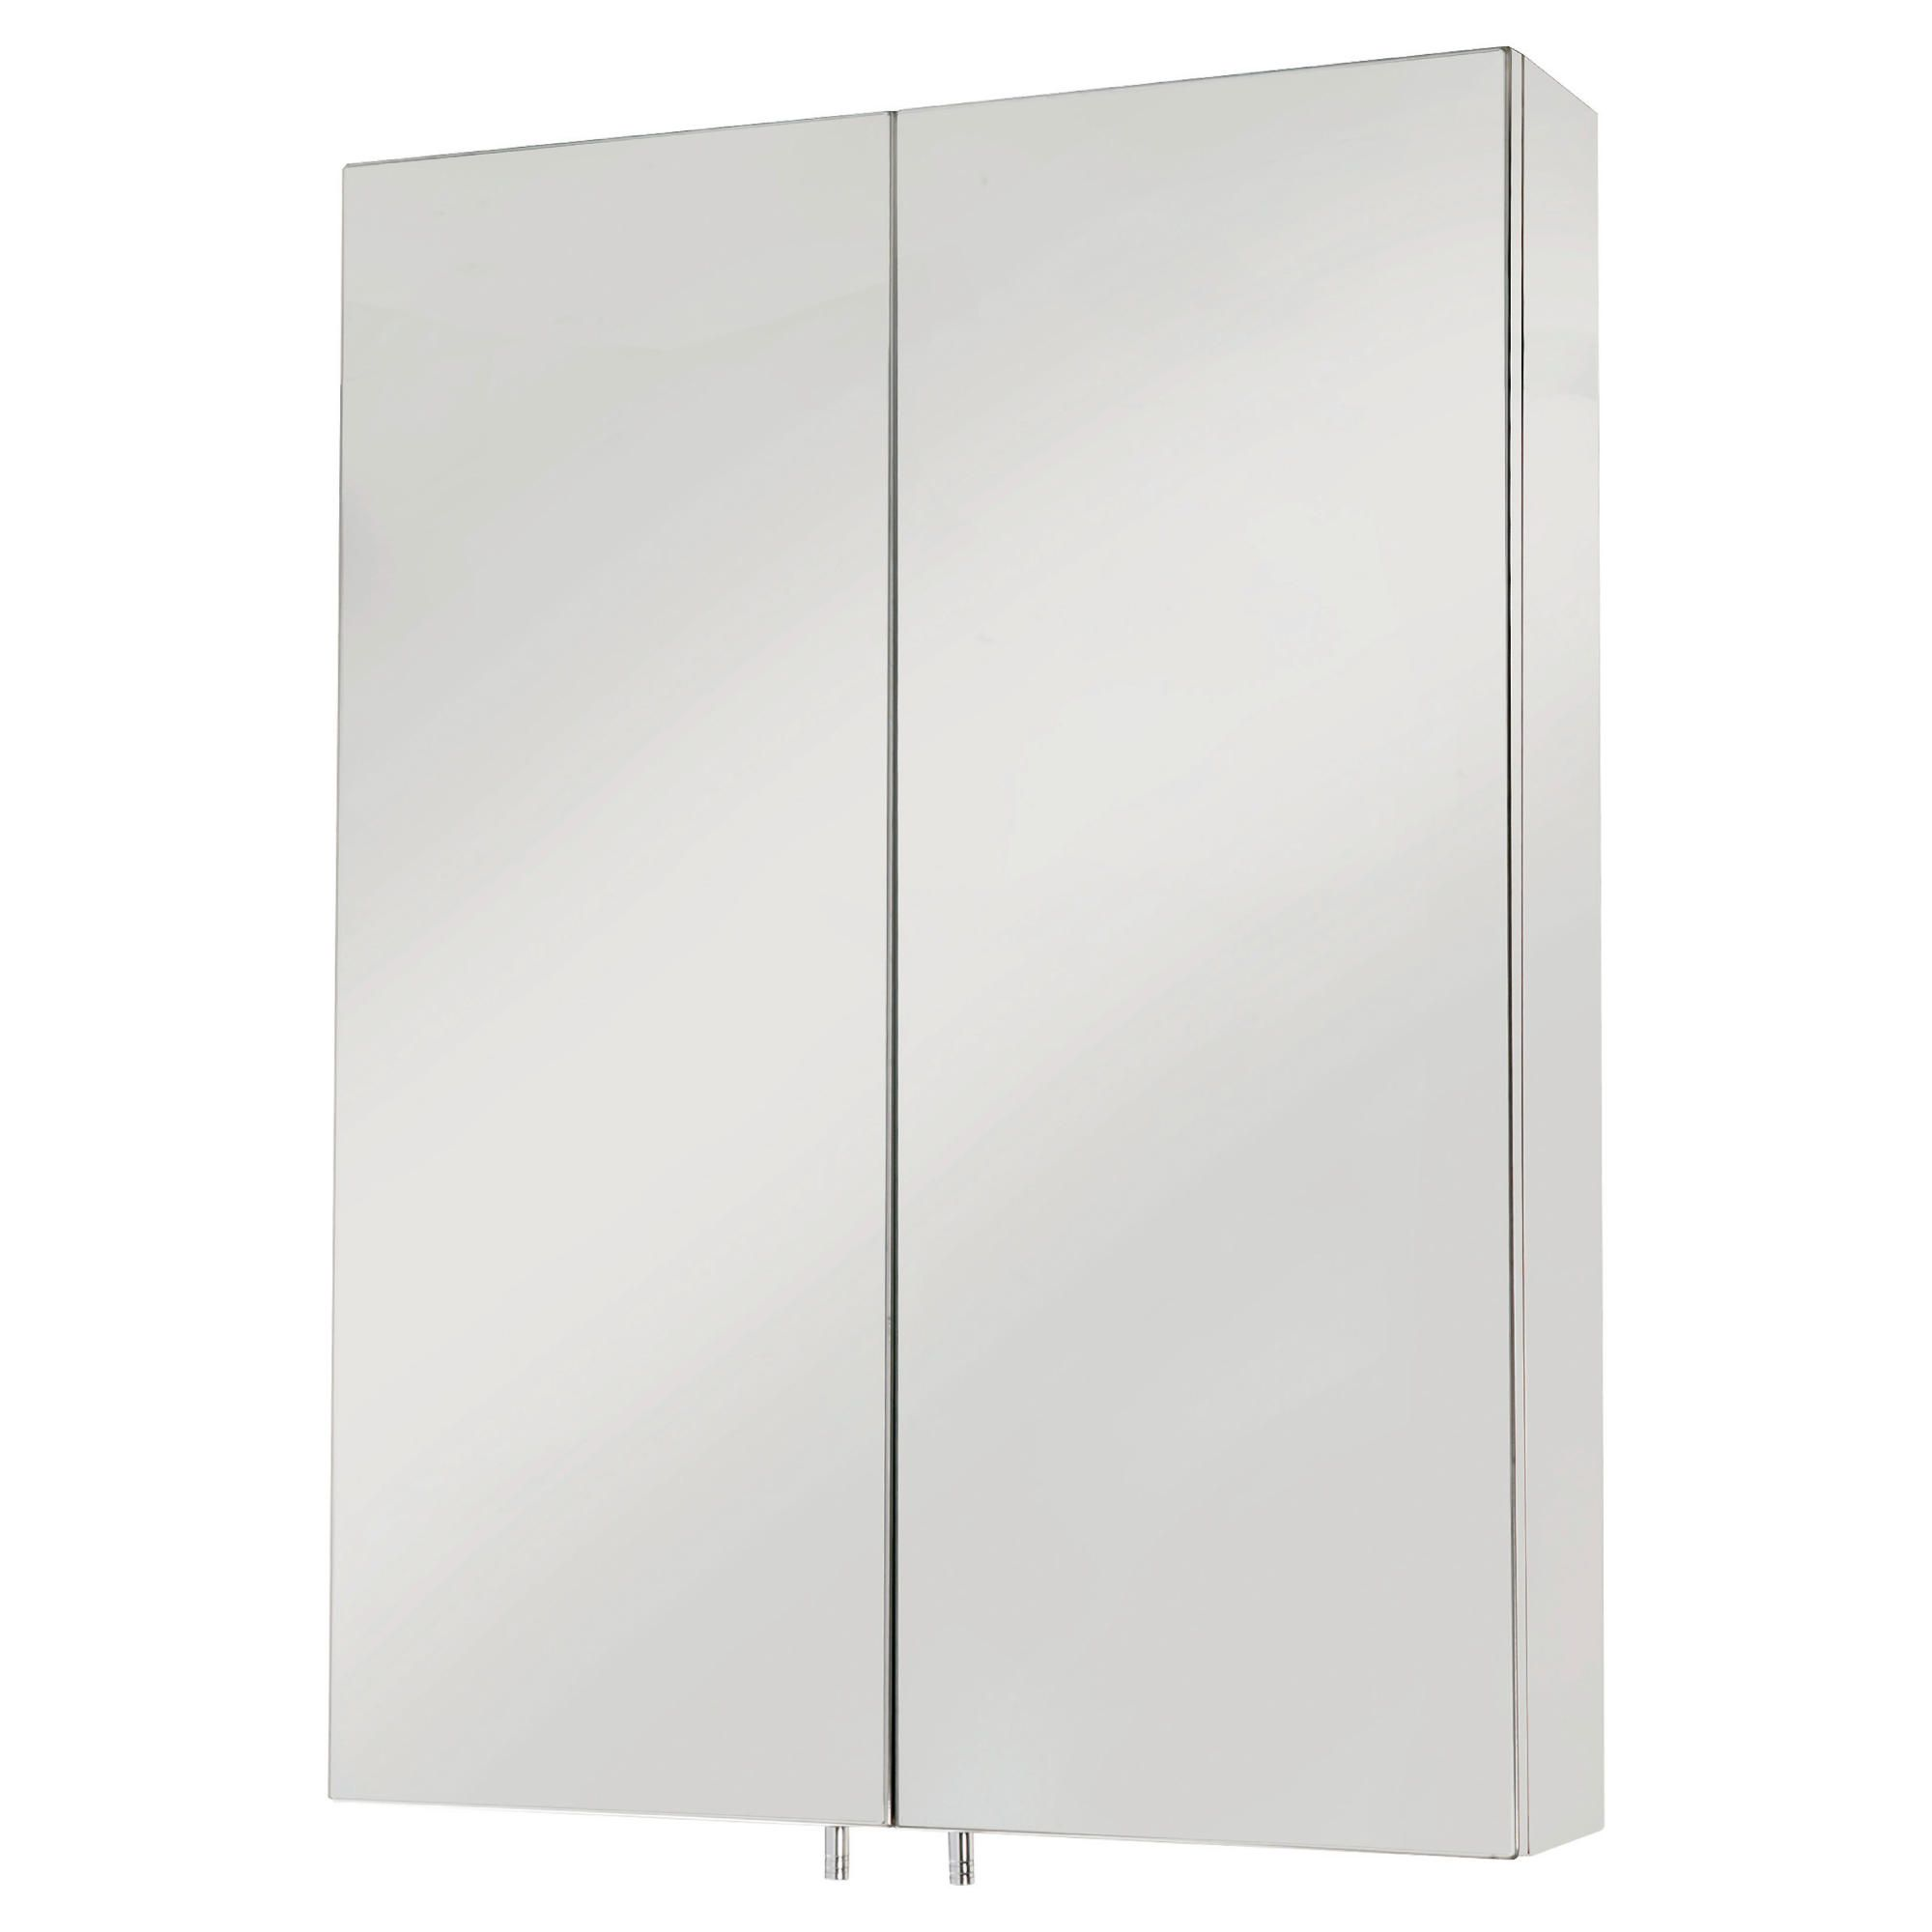 Croydex Anton Two Door Stainless Steel Cabinet